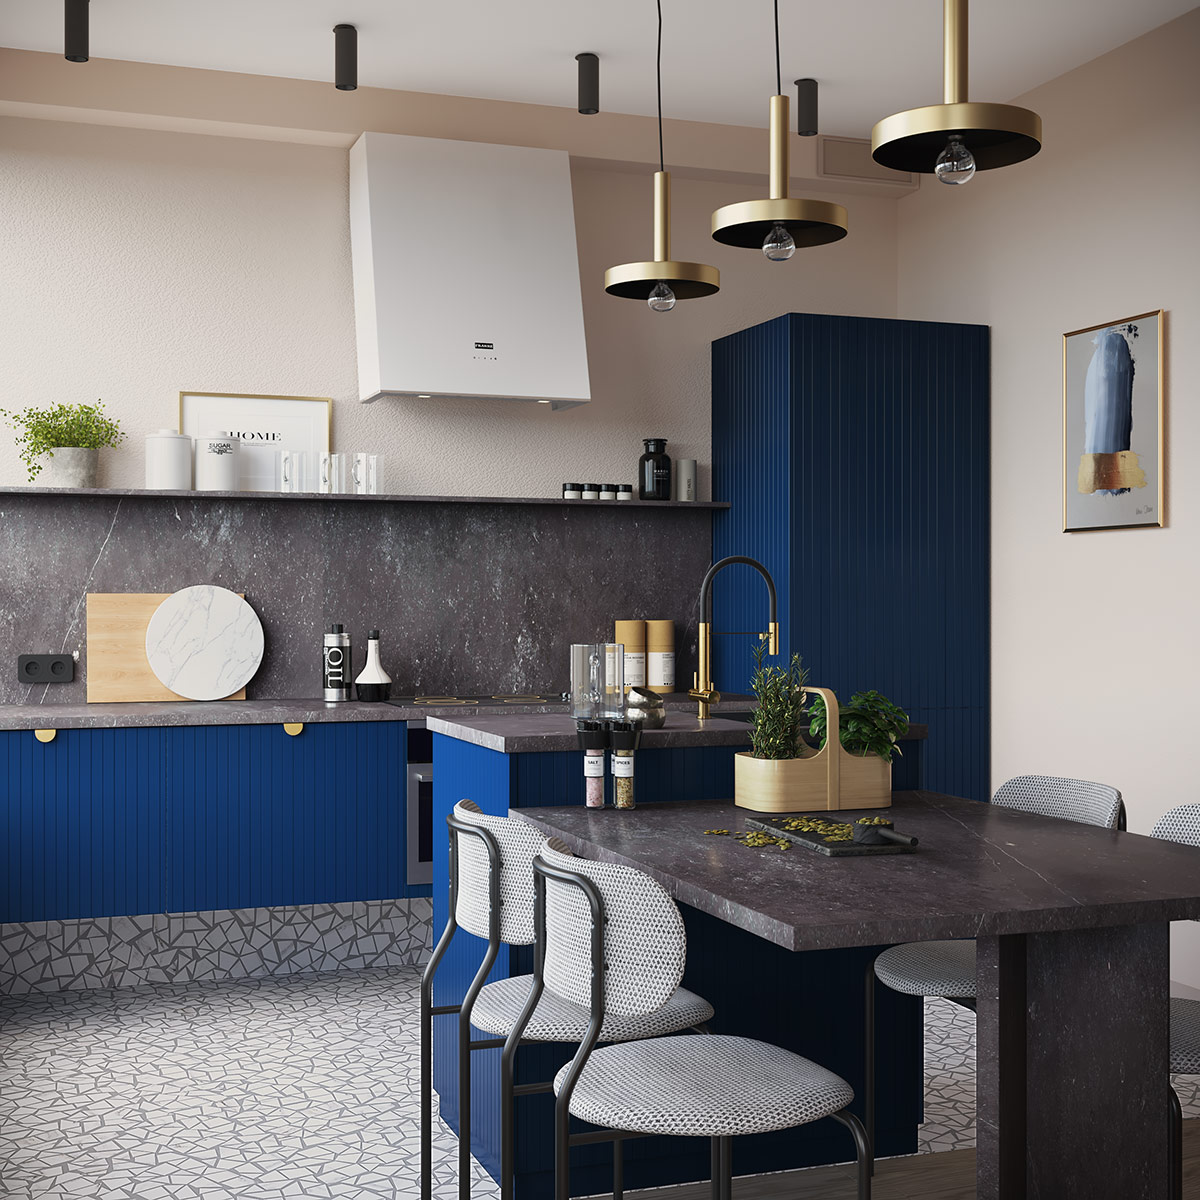 Interior Design Using Orange & Blue: Tips To Help You